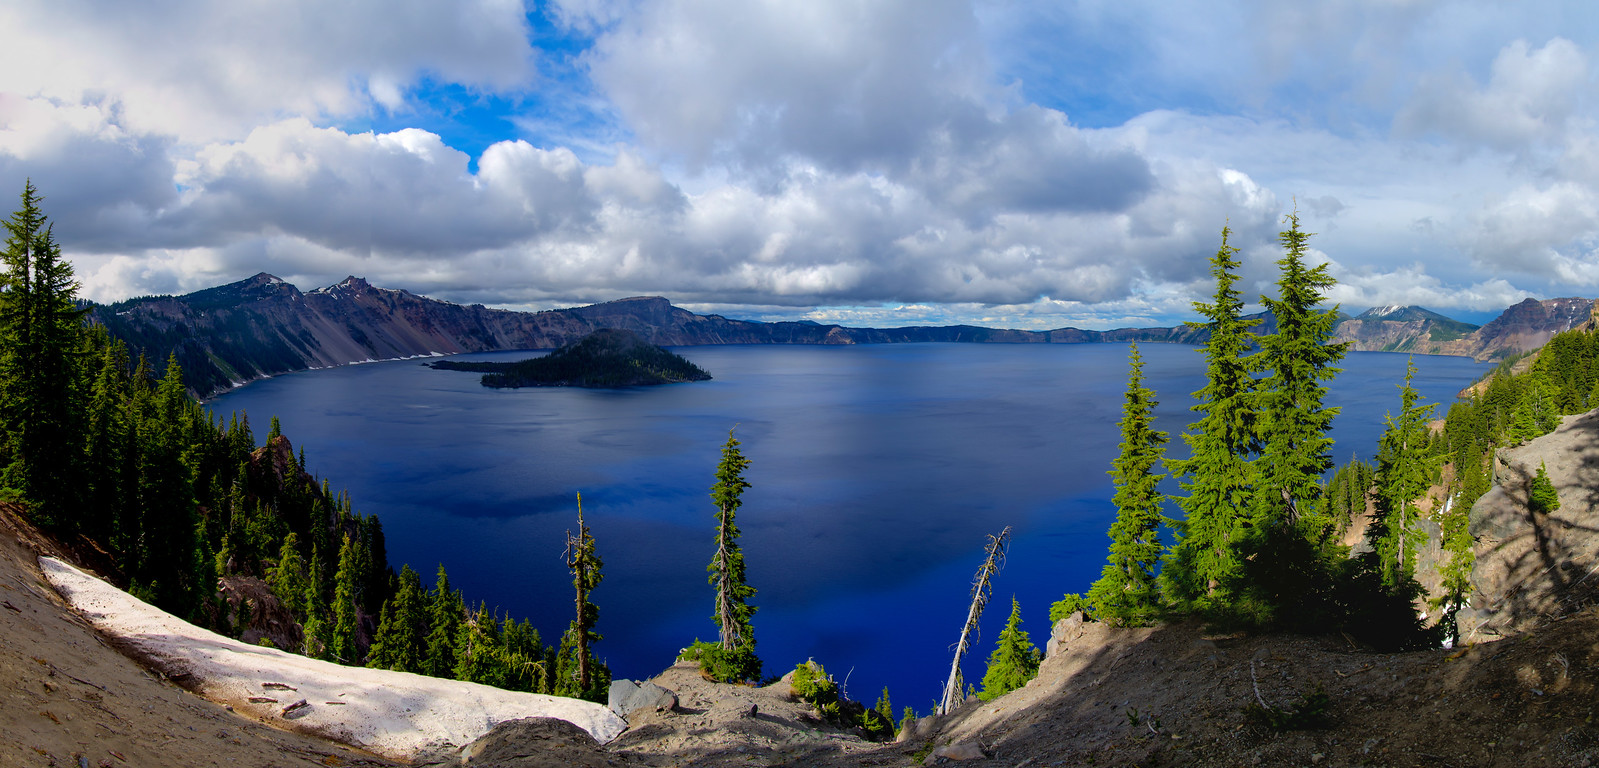 200 - Crater Lake National Park, Oregon